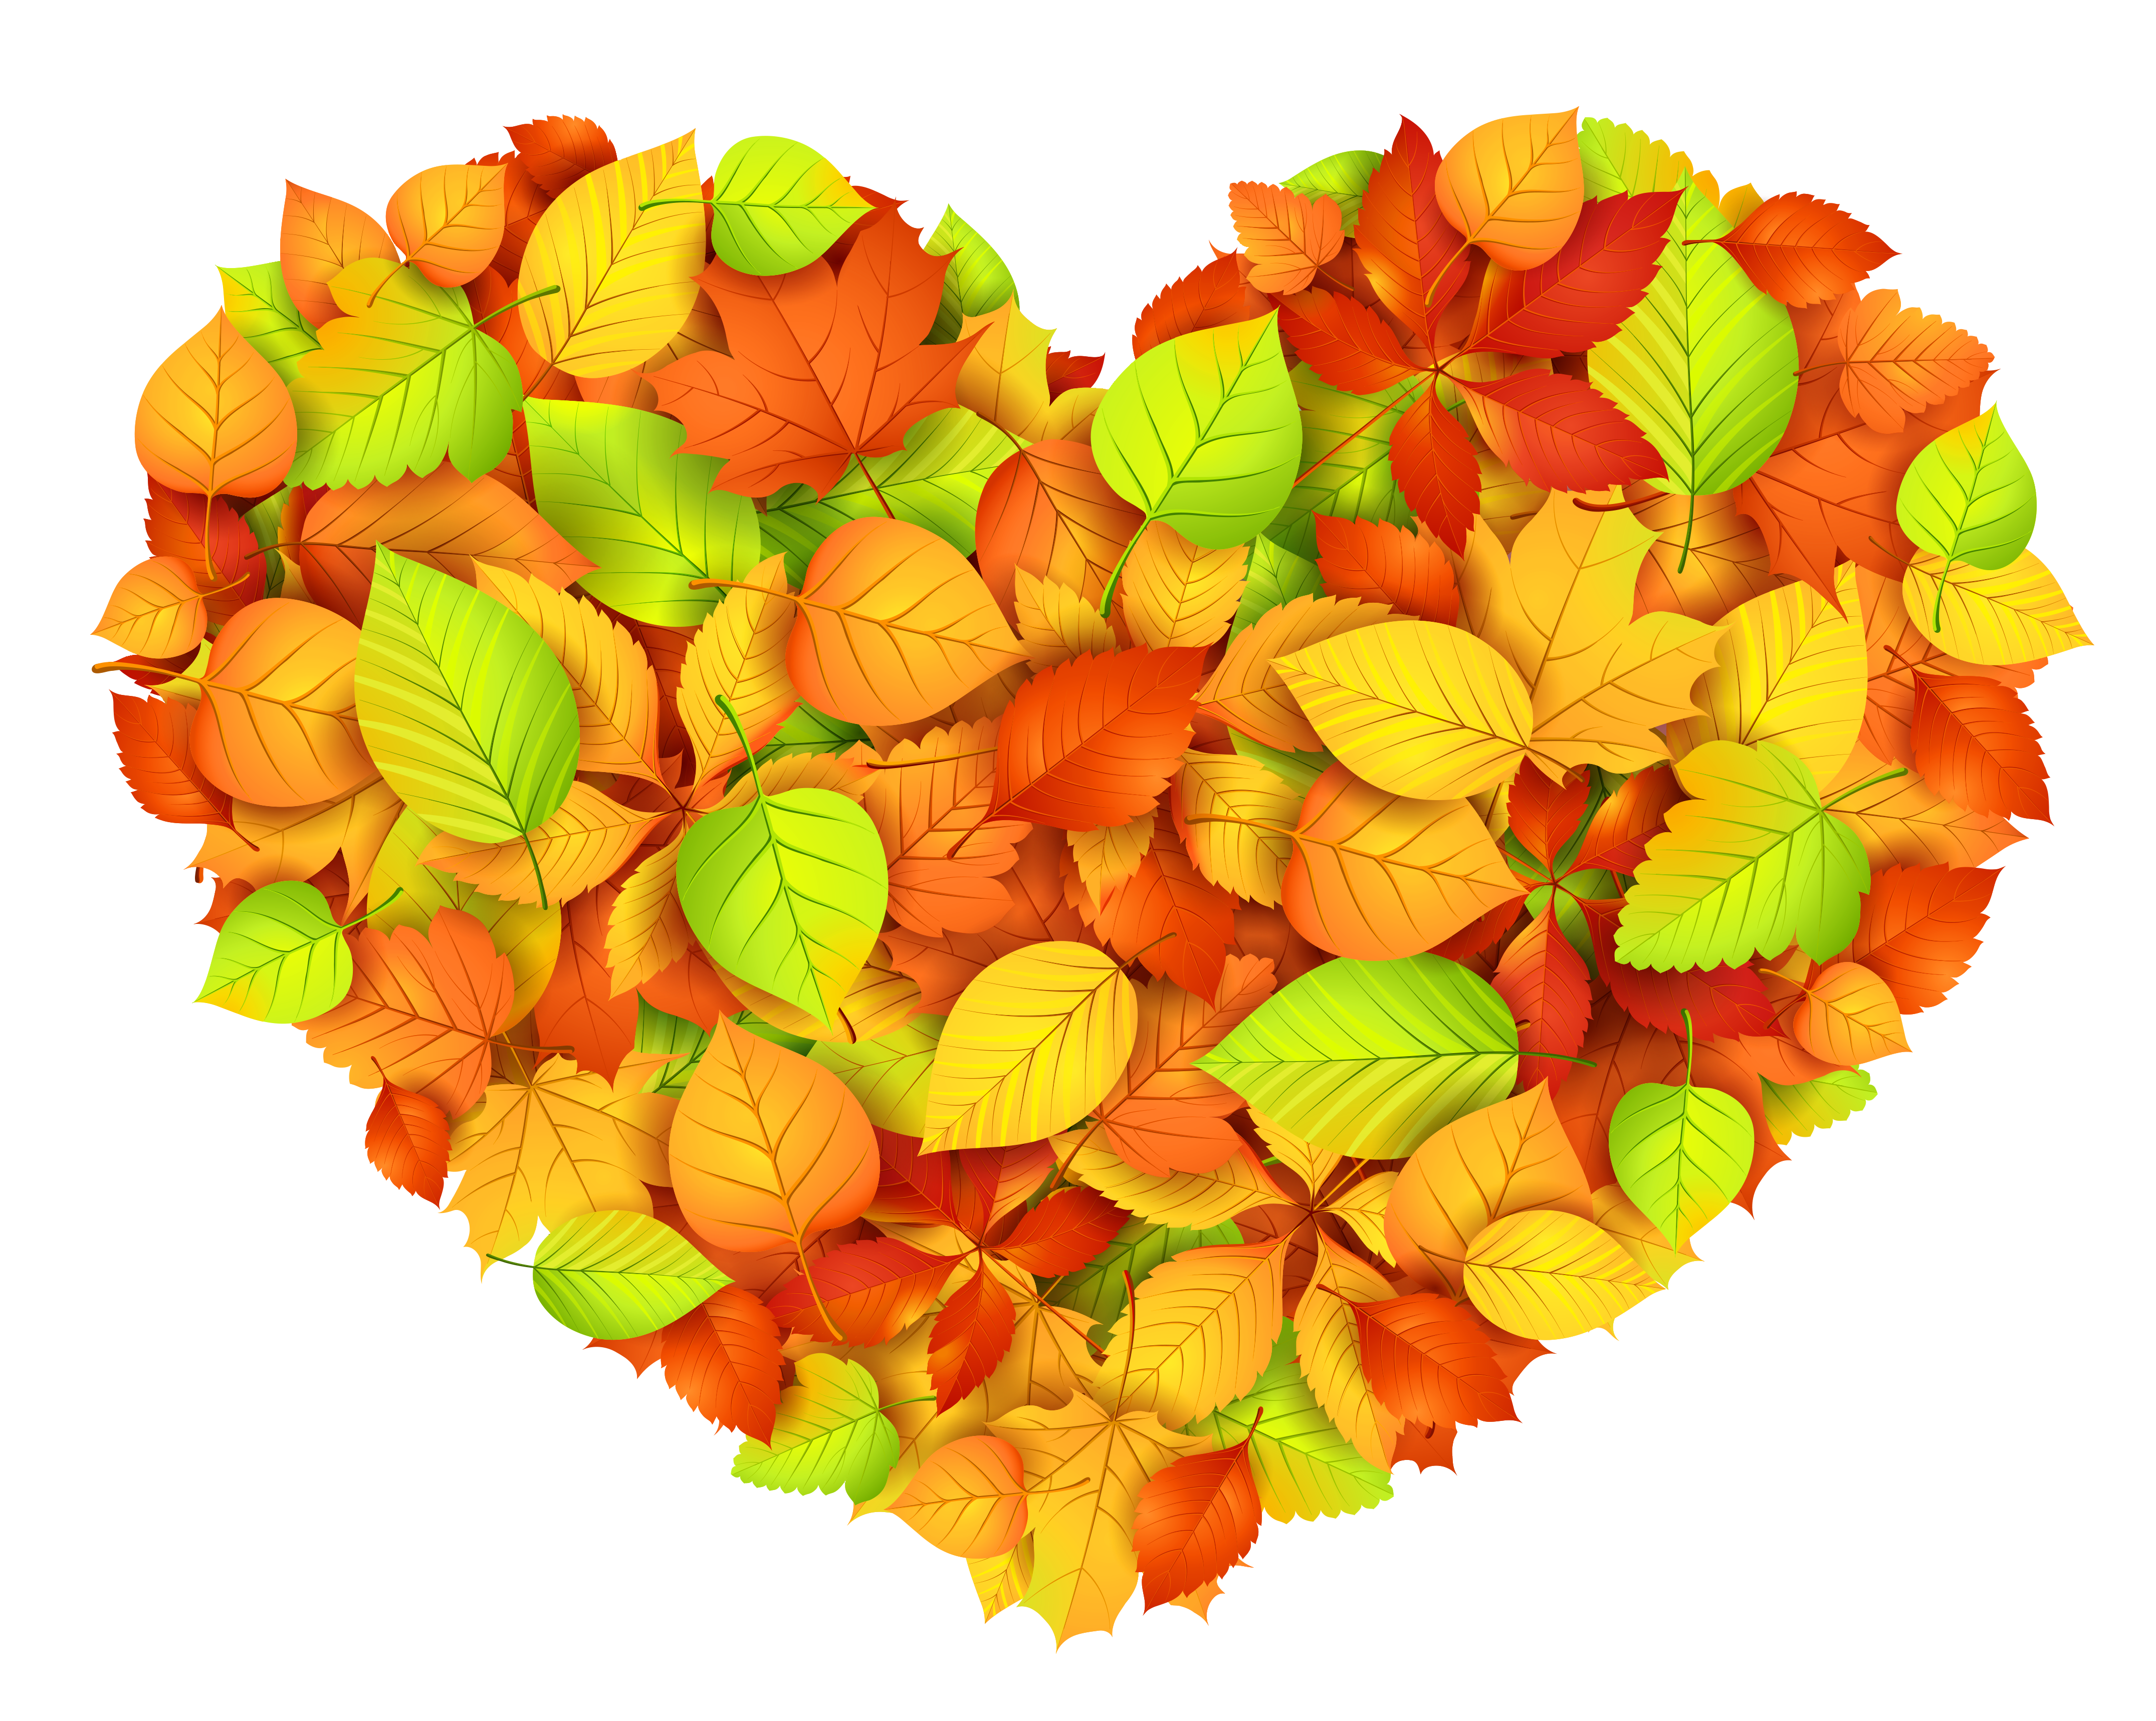 Autumn heart clipart vector free download Heart of Autumn Leaves Decor Transparent Picture | Gallery ... vector free download